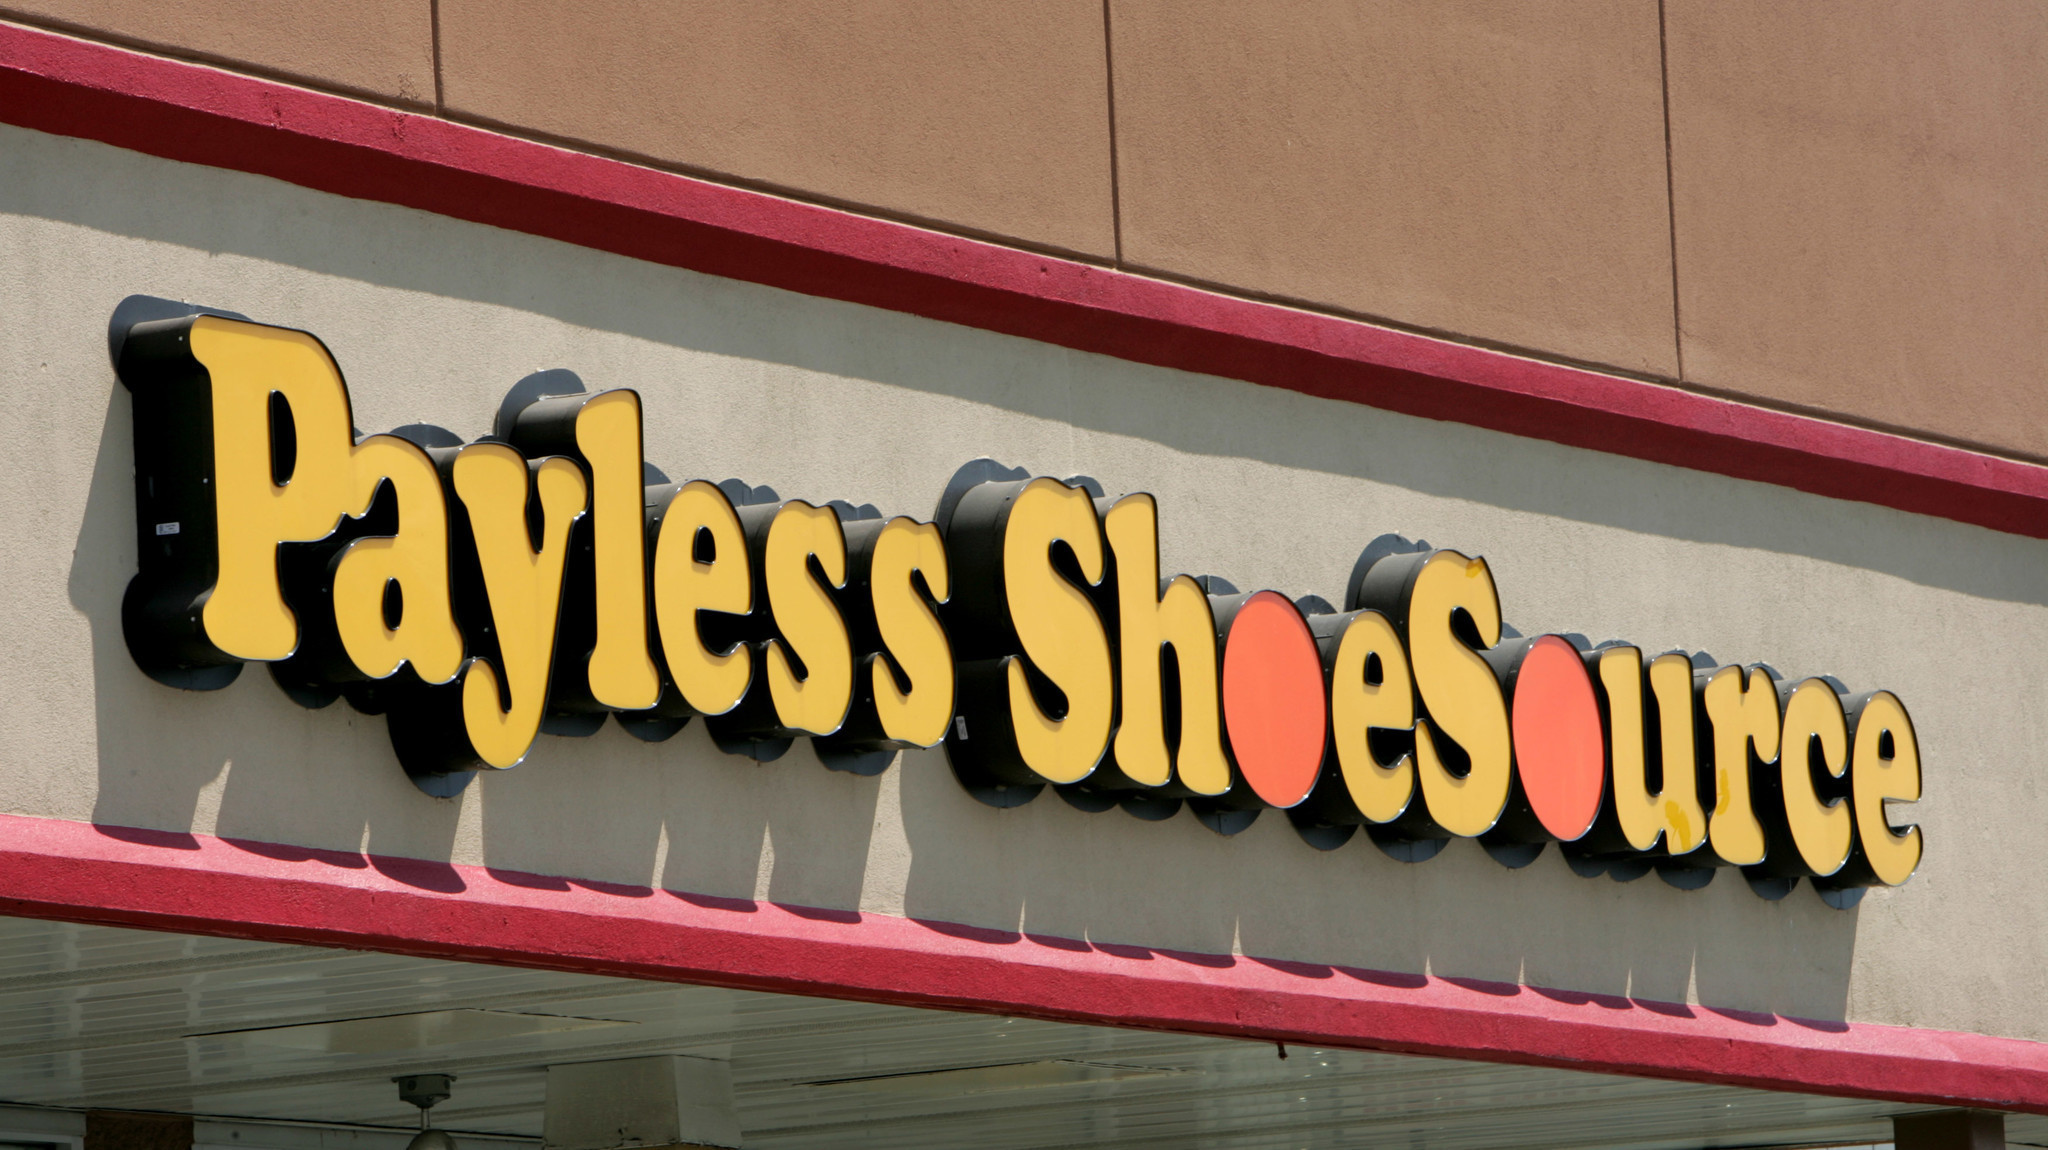 b350e33909c Payless ShoeSource files for bankruptcy protection